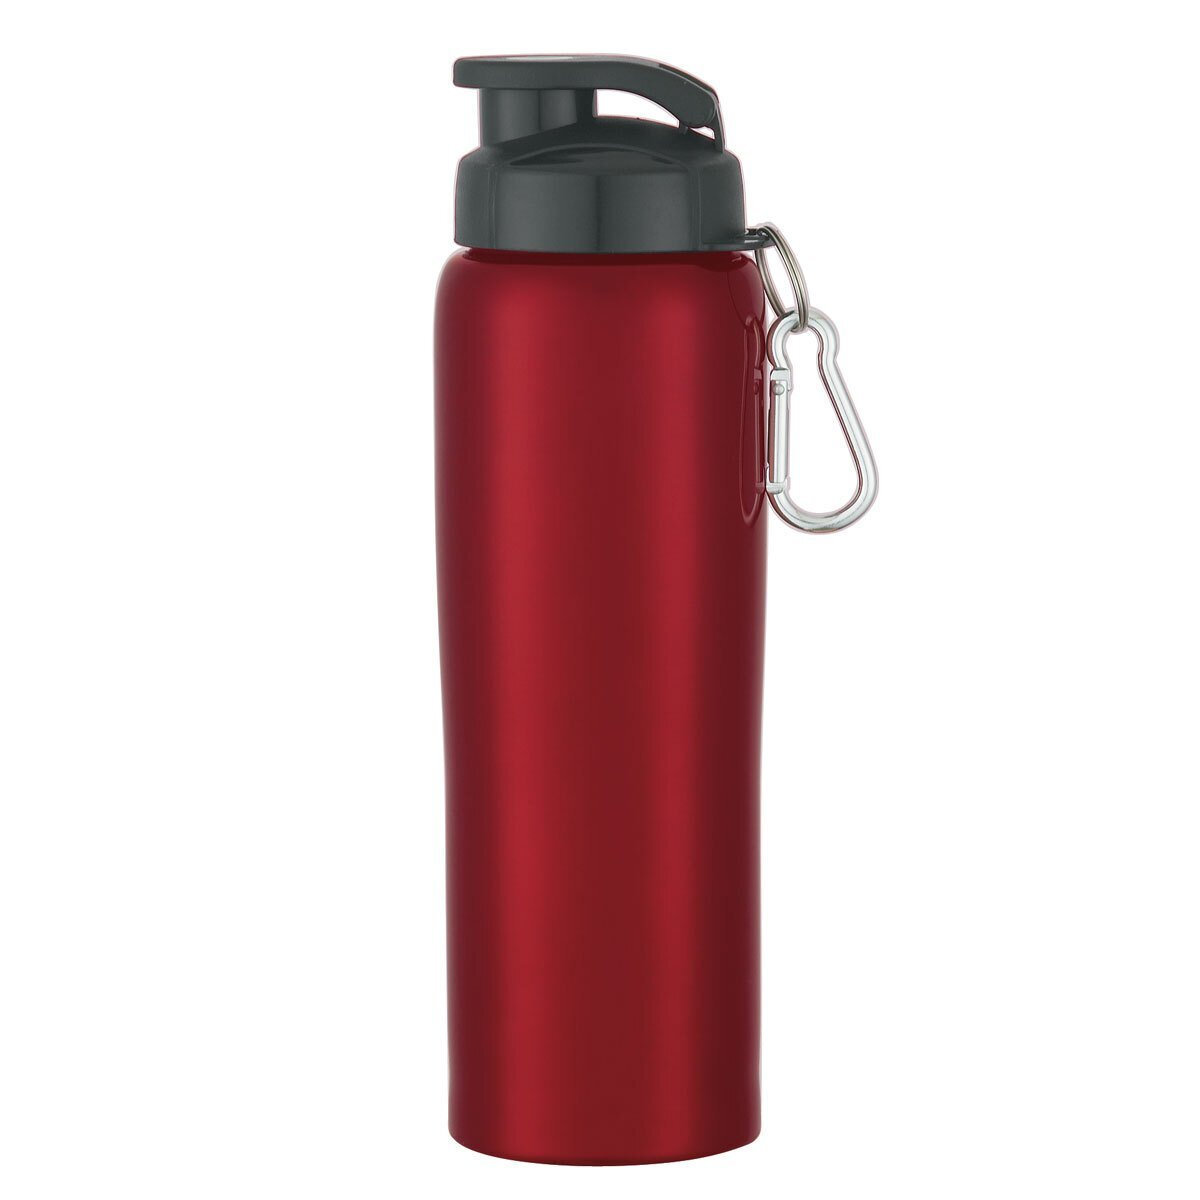 Stainless Steel Bike Bottle, 24oz